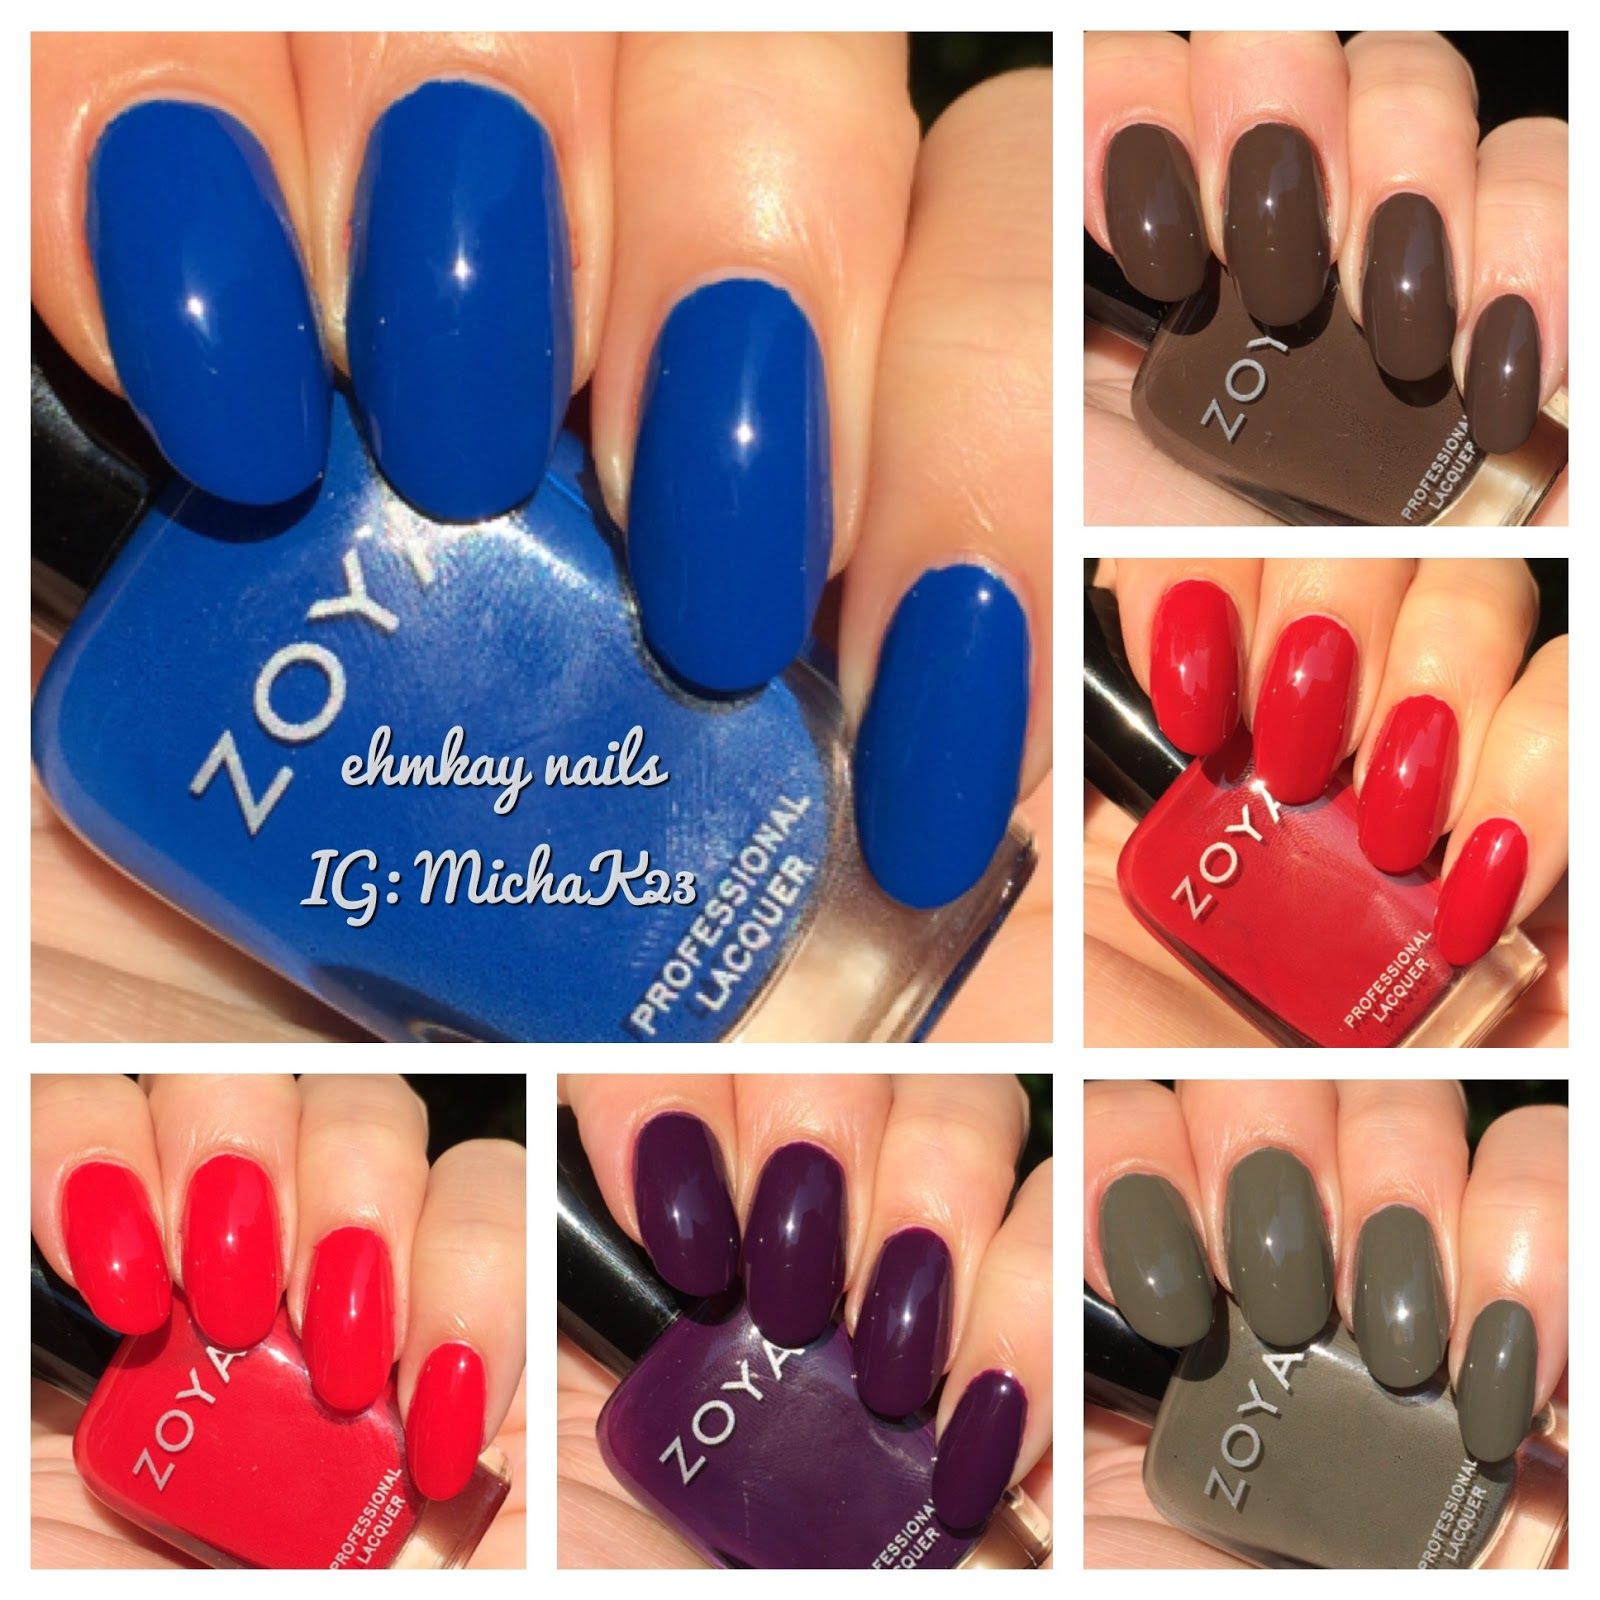 ehmkay nails: Zoya Fall 2015 Focus Collection: Swatches and Review